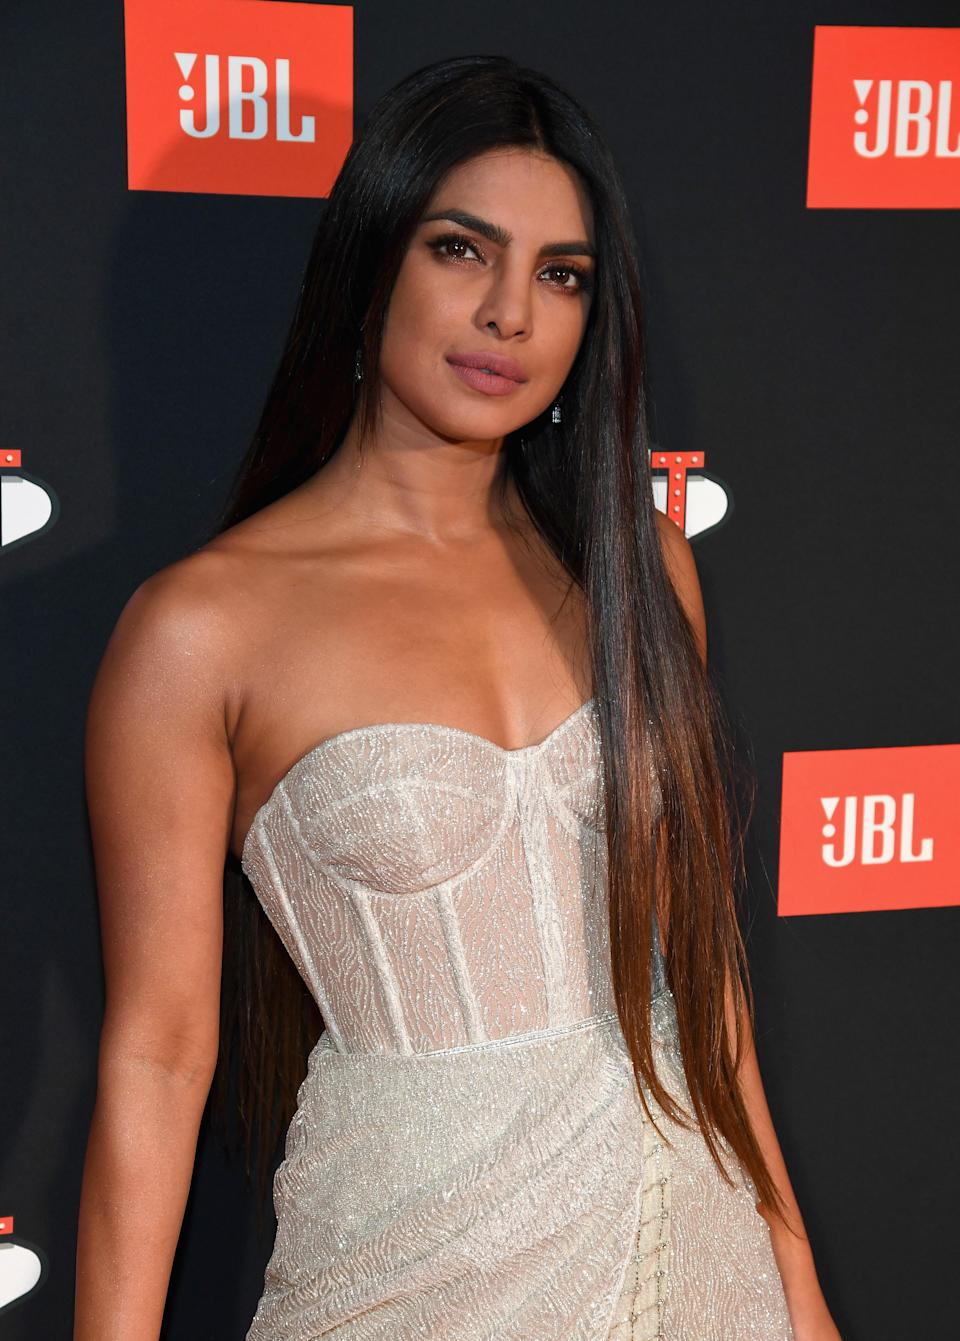 """<h1 class=""""title"""">JBL Fest 2018 - JBL Sound Splash - Hosted By Olivia Culpo With Performances by Pitbull</h1><cite class=""""credit"""">Kevin Mazur/Getty Images</cite>"""